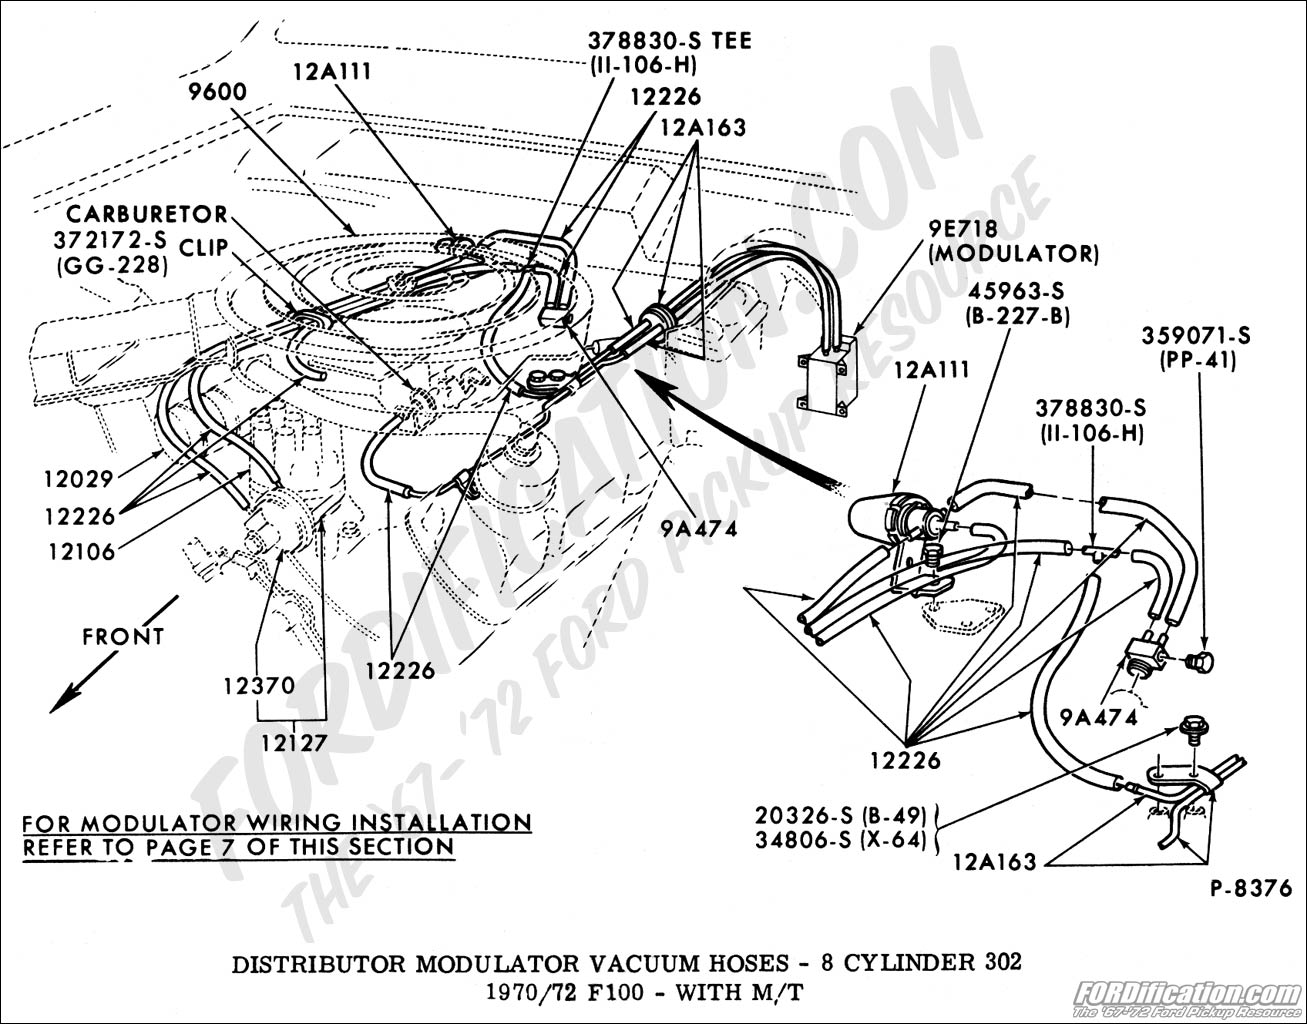 tesla engine diagram best wiring library 1999 Ford Ranger Ignition Wiring Diagram ford 390 engine parts diagram wiring diagram third level rh 6 13 20 jacobwinterstein lt1